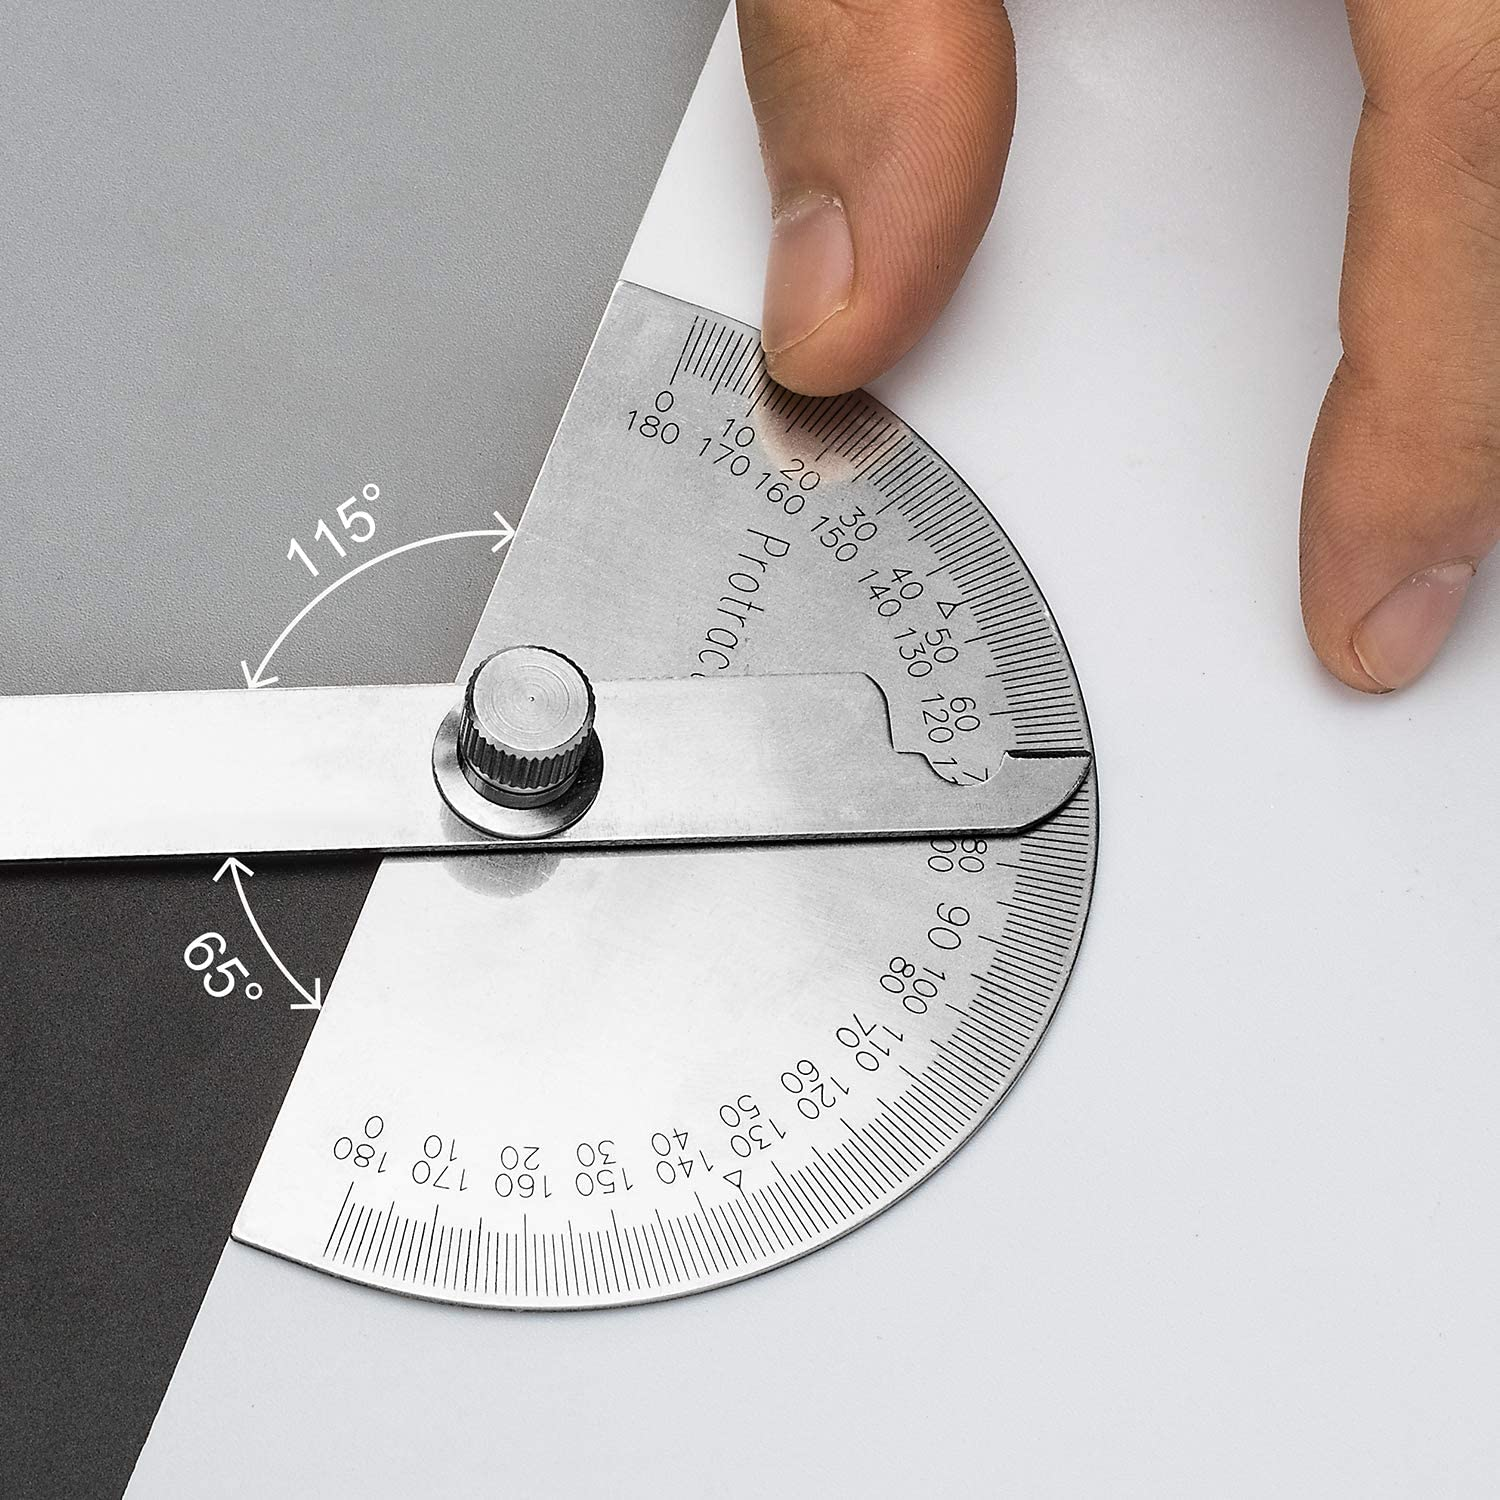 Adjustable Angle Finder with Arm Ruler OIIKI Round Head Angle Protractor Craftsman 0-180/° Stainless Steel Angle Protractor Measuring Tool for Woodworking